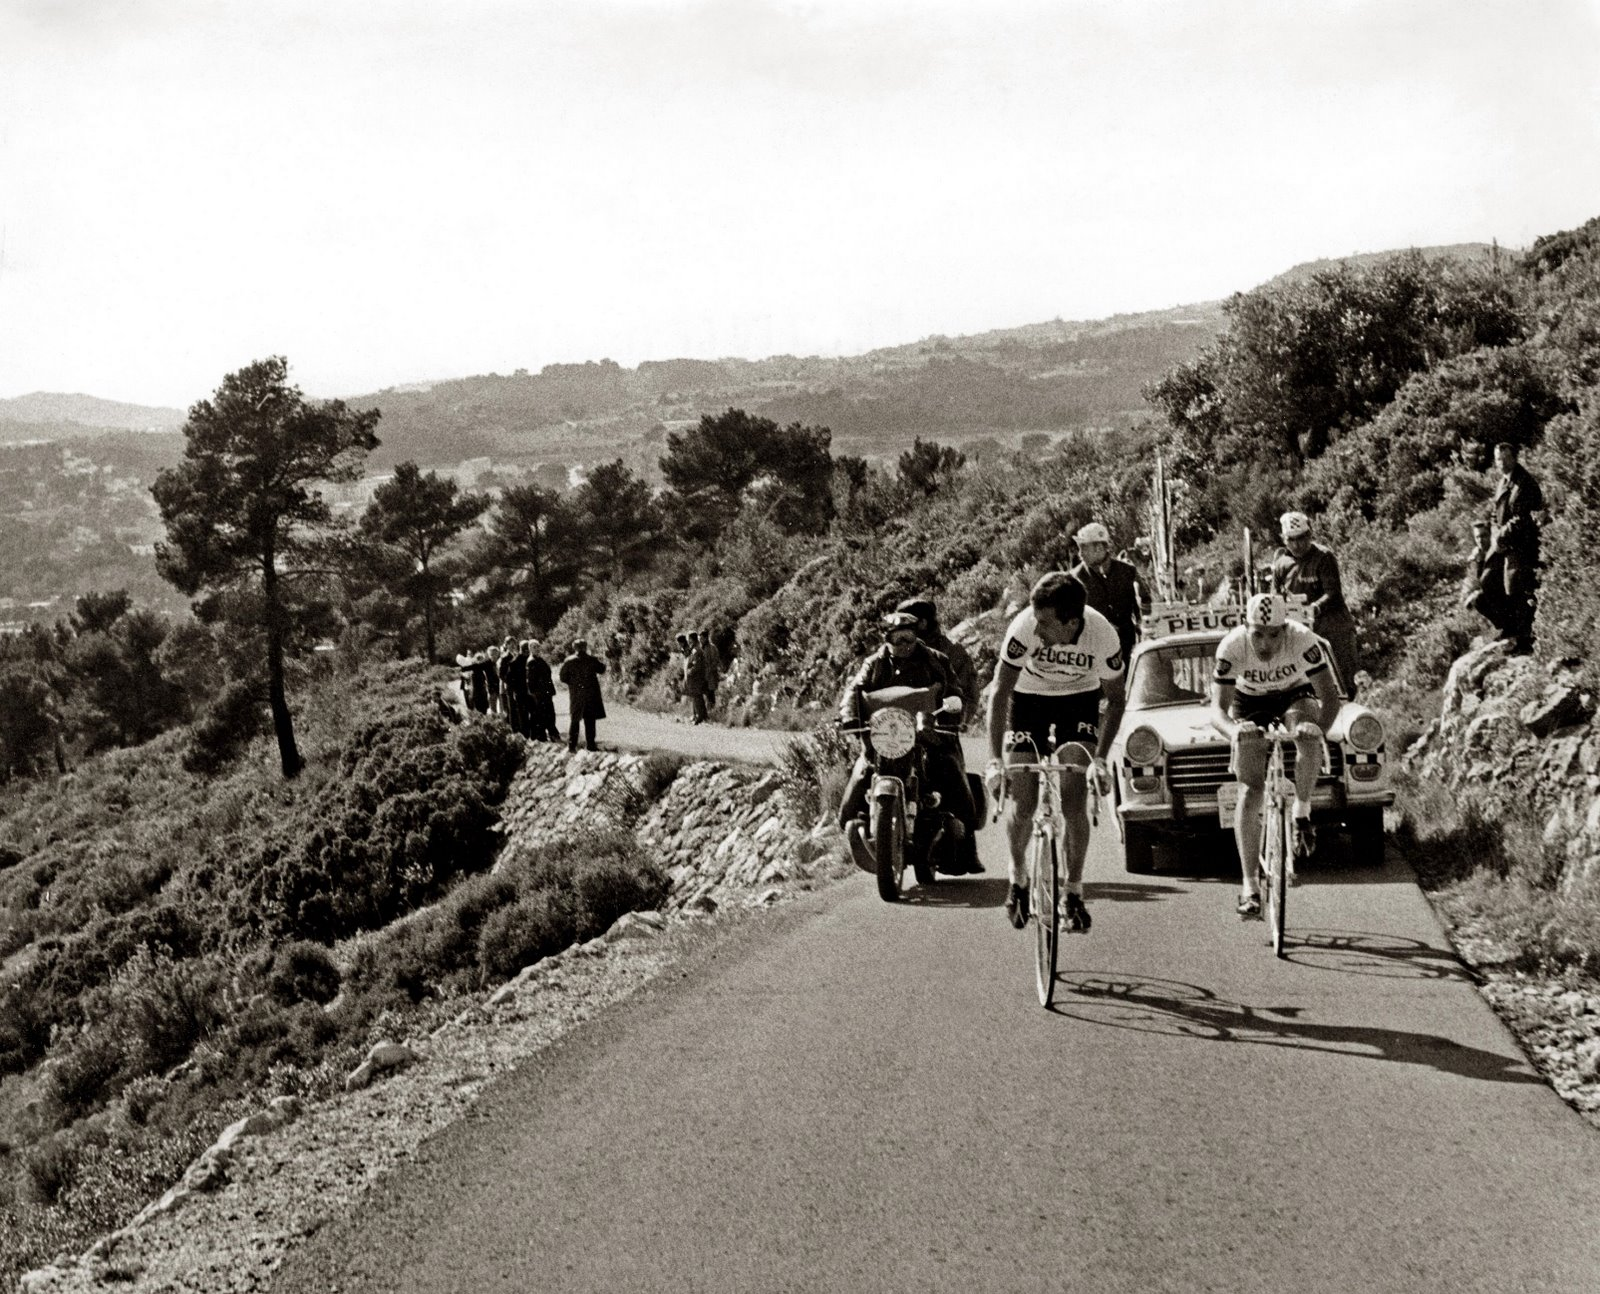 Eddy Merckx et Tom Simpson pour Paris Nice en 1967